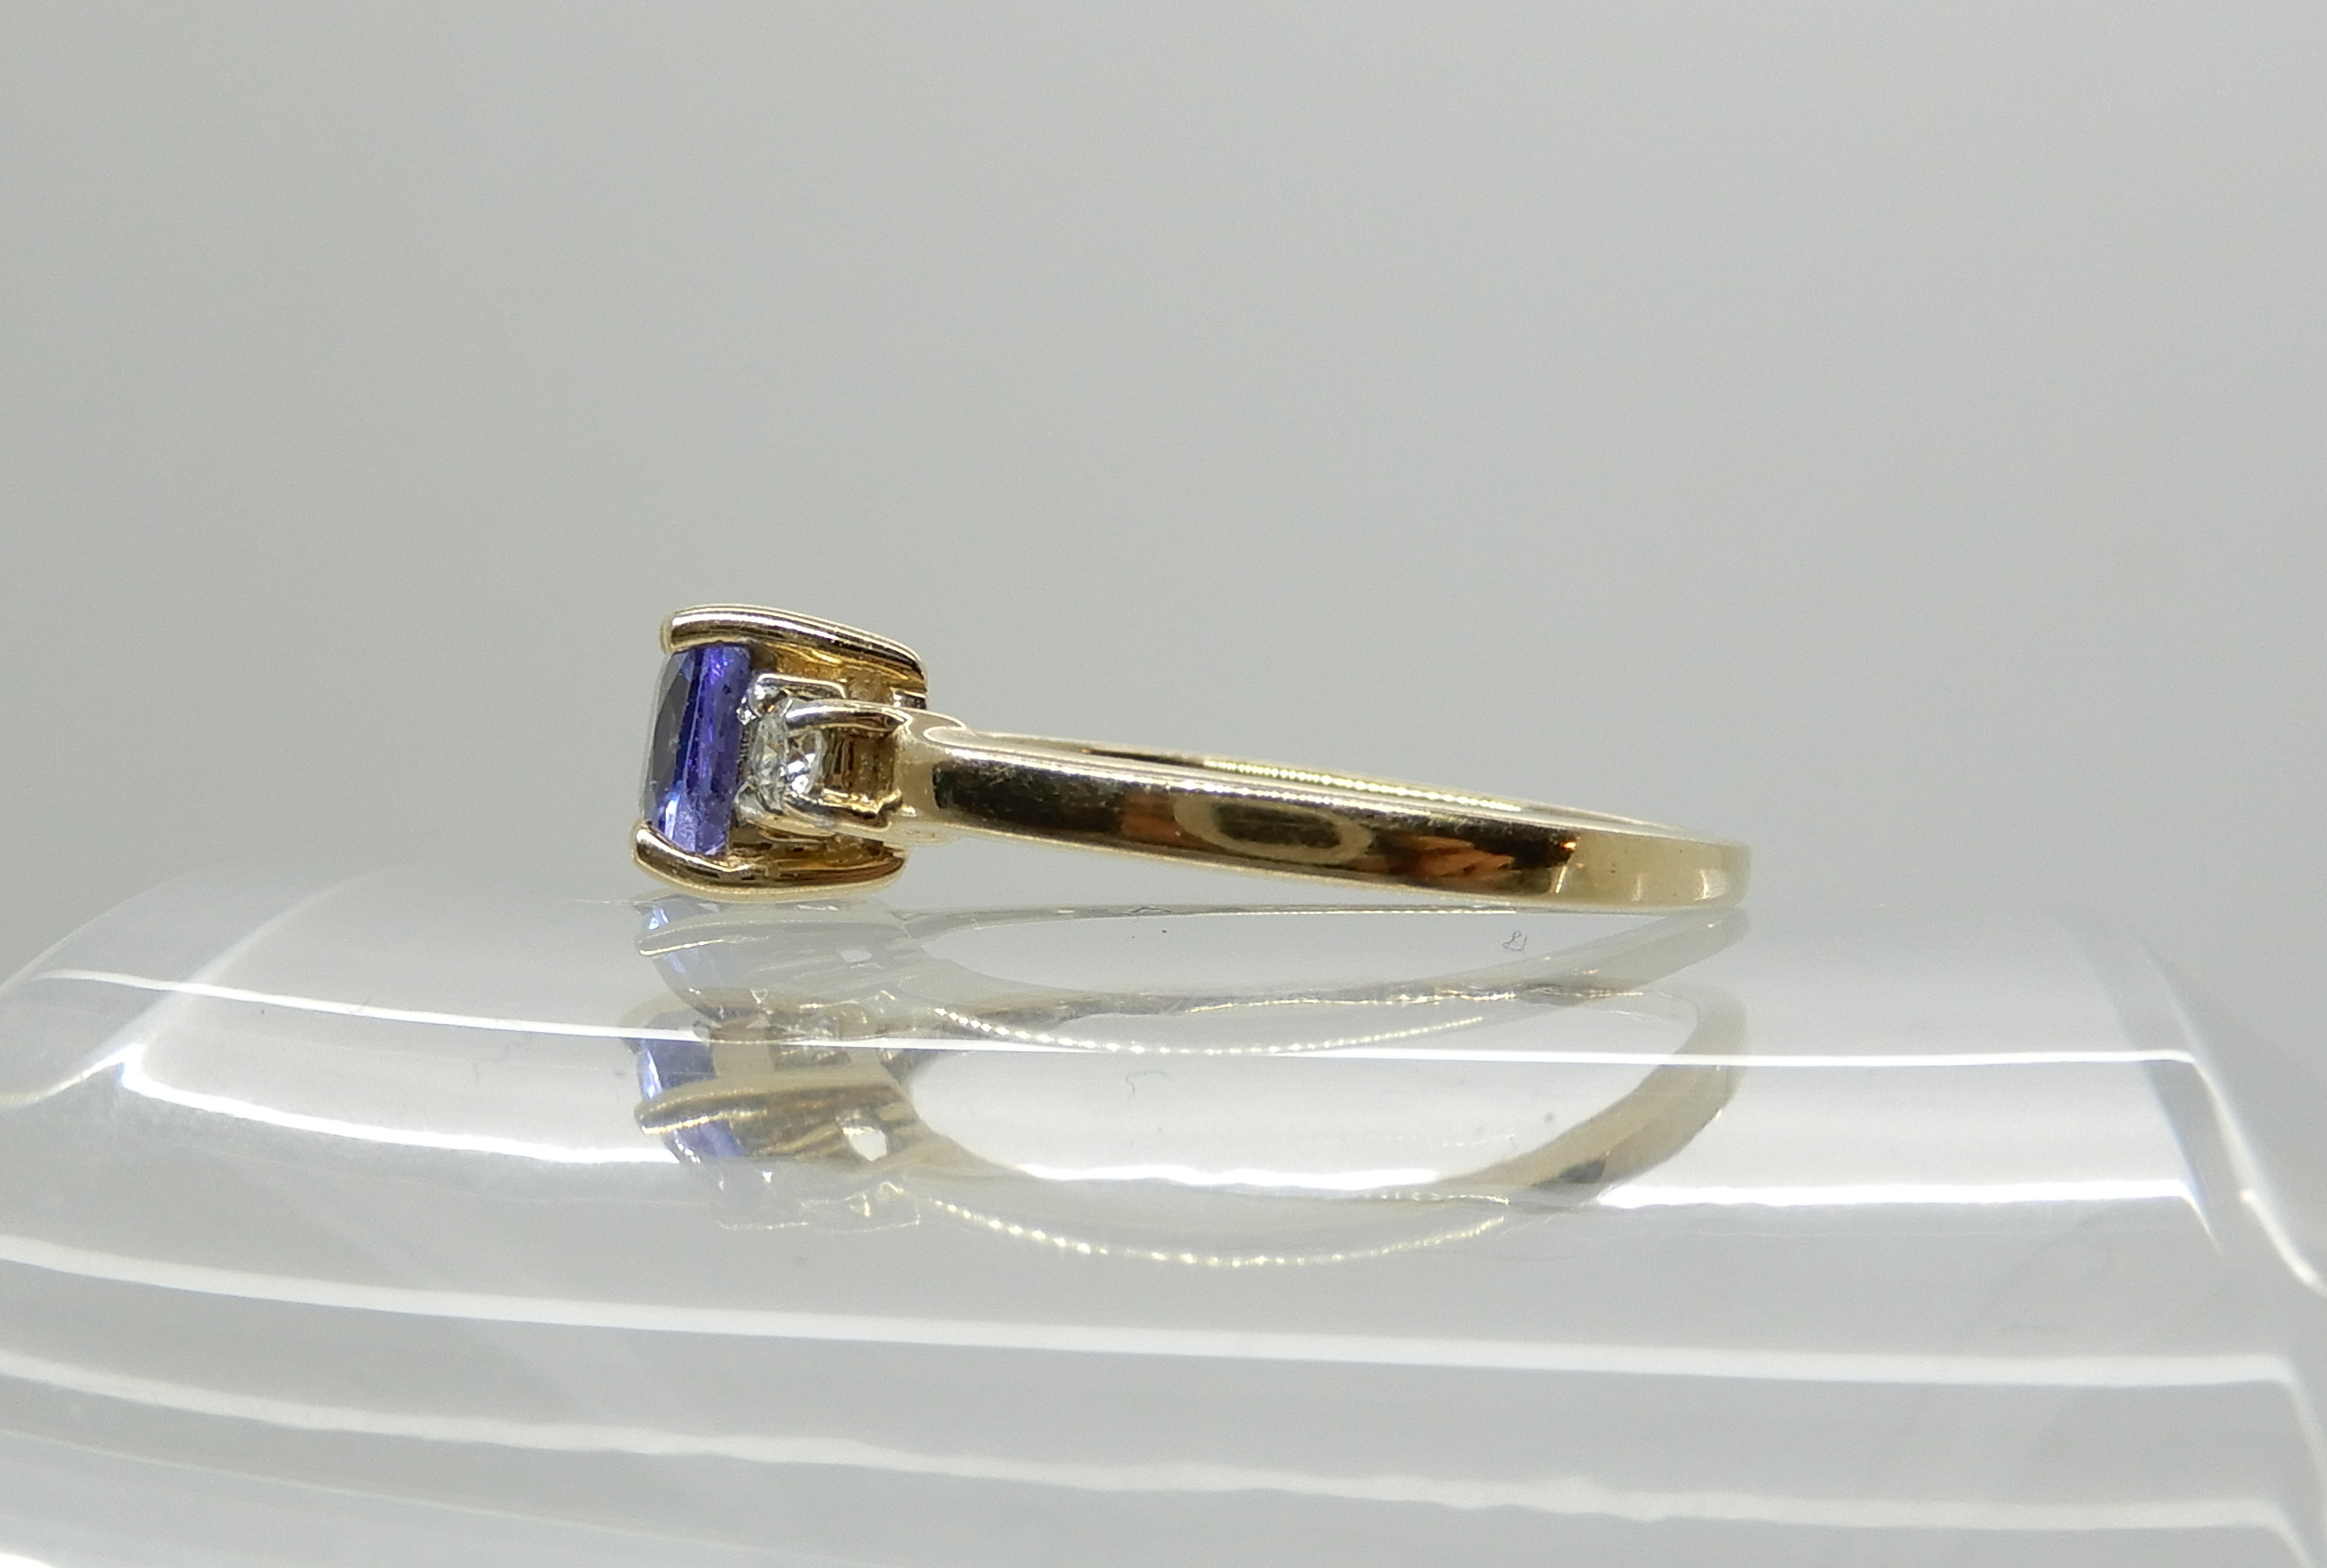 Lot 43 - A 9ct gold tanzanite and diamond ring, size Q, weight 2.3gms Condition Report: Available upon